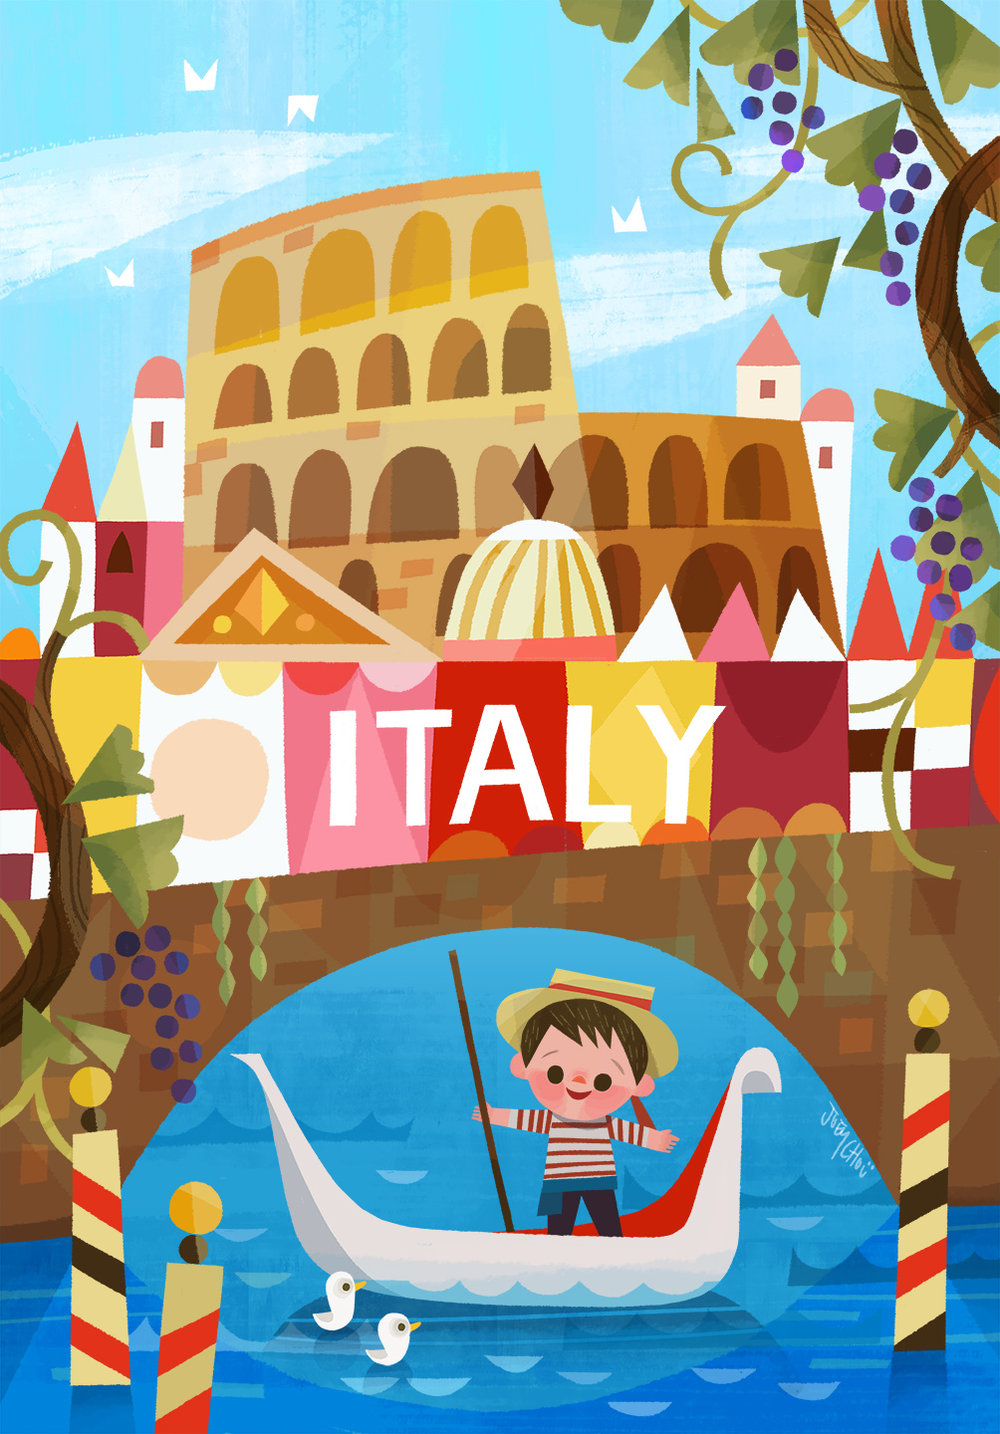 smallworld_posterart_italy_web.jpg